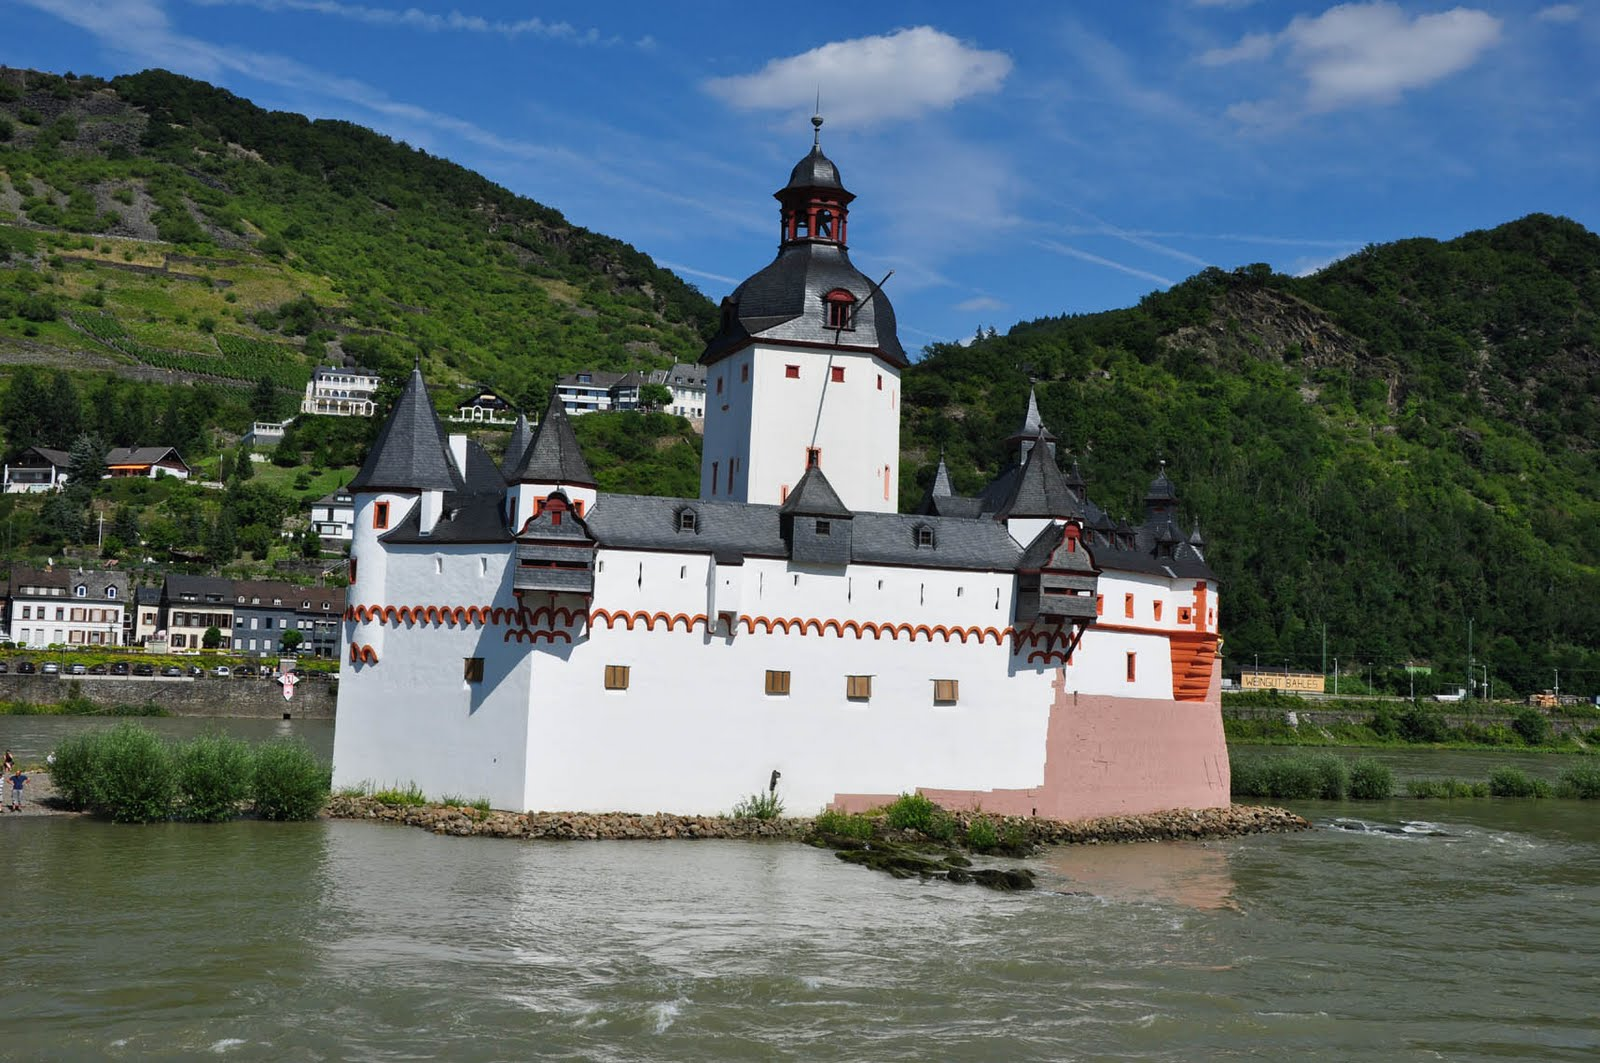 Pfalz Castle, once a toll booth on the Rhine river (knate.blogspot.com)